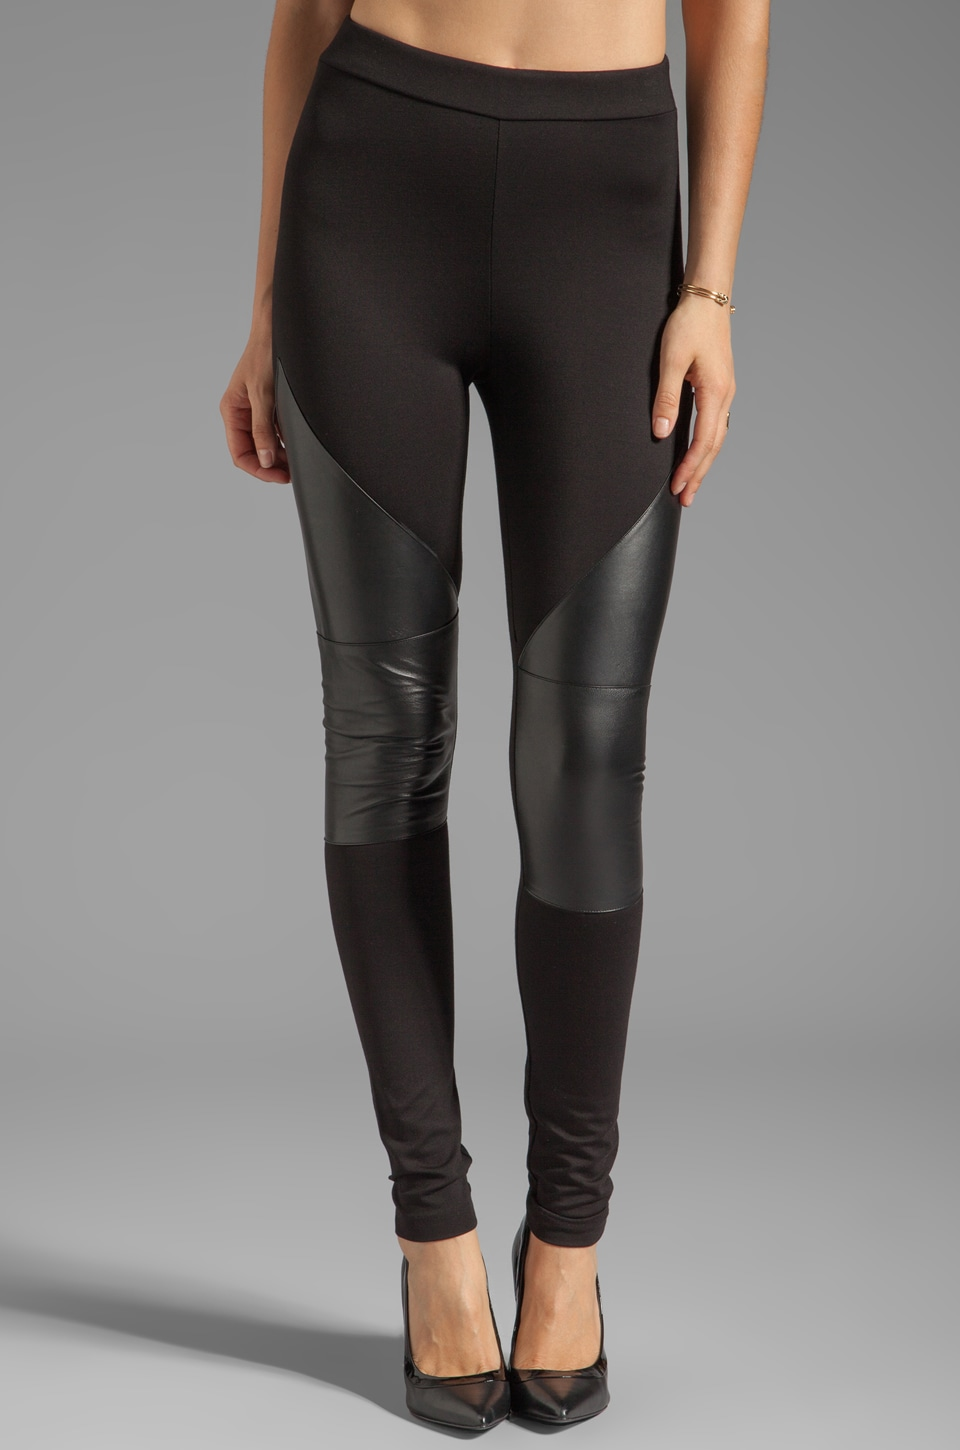 LA Made Lambskin Contrast Legging in Black